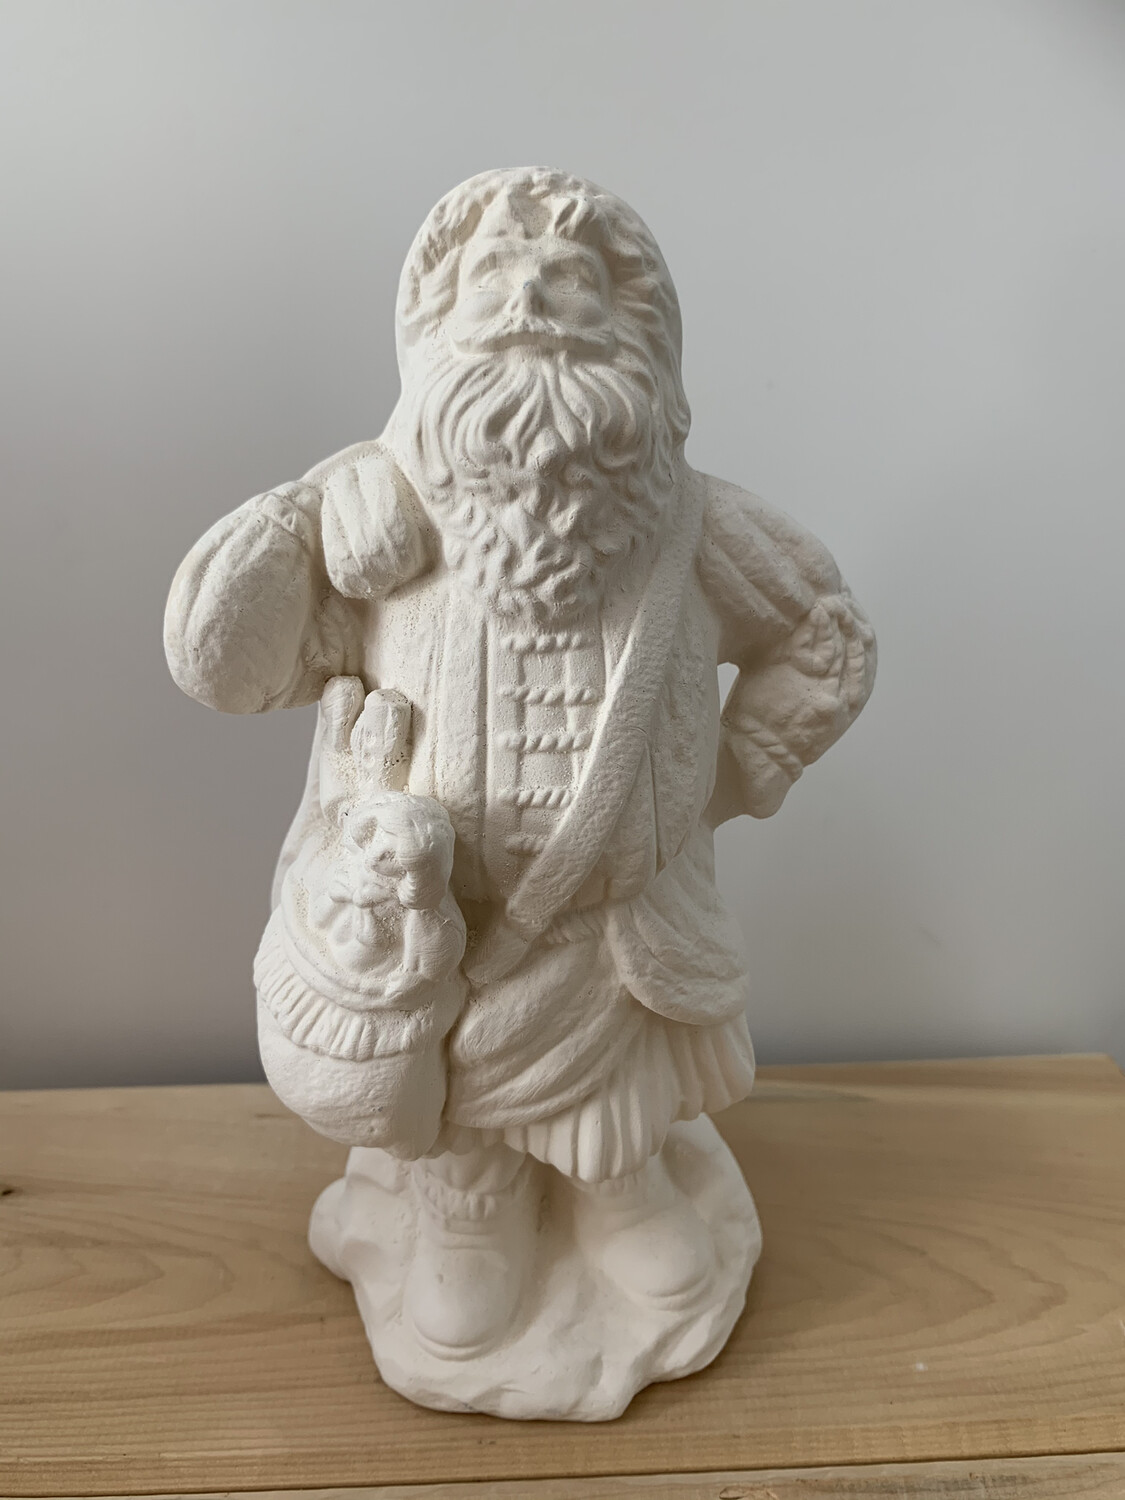 Paint Your Own Pottery - Ceramic   Santa Figurine Painting Kit